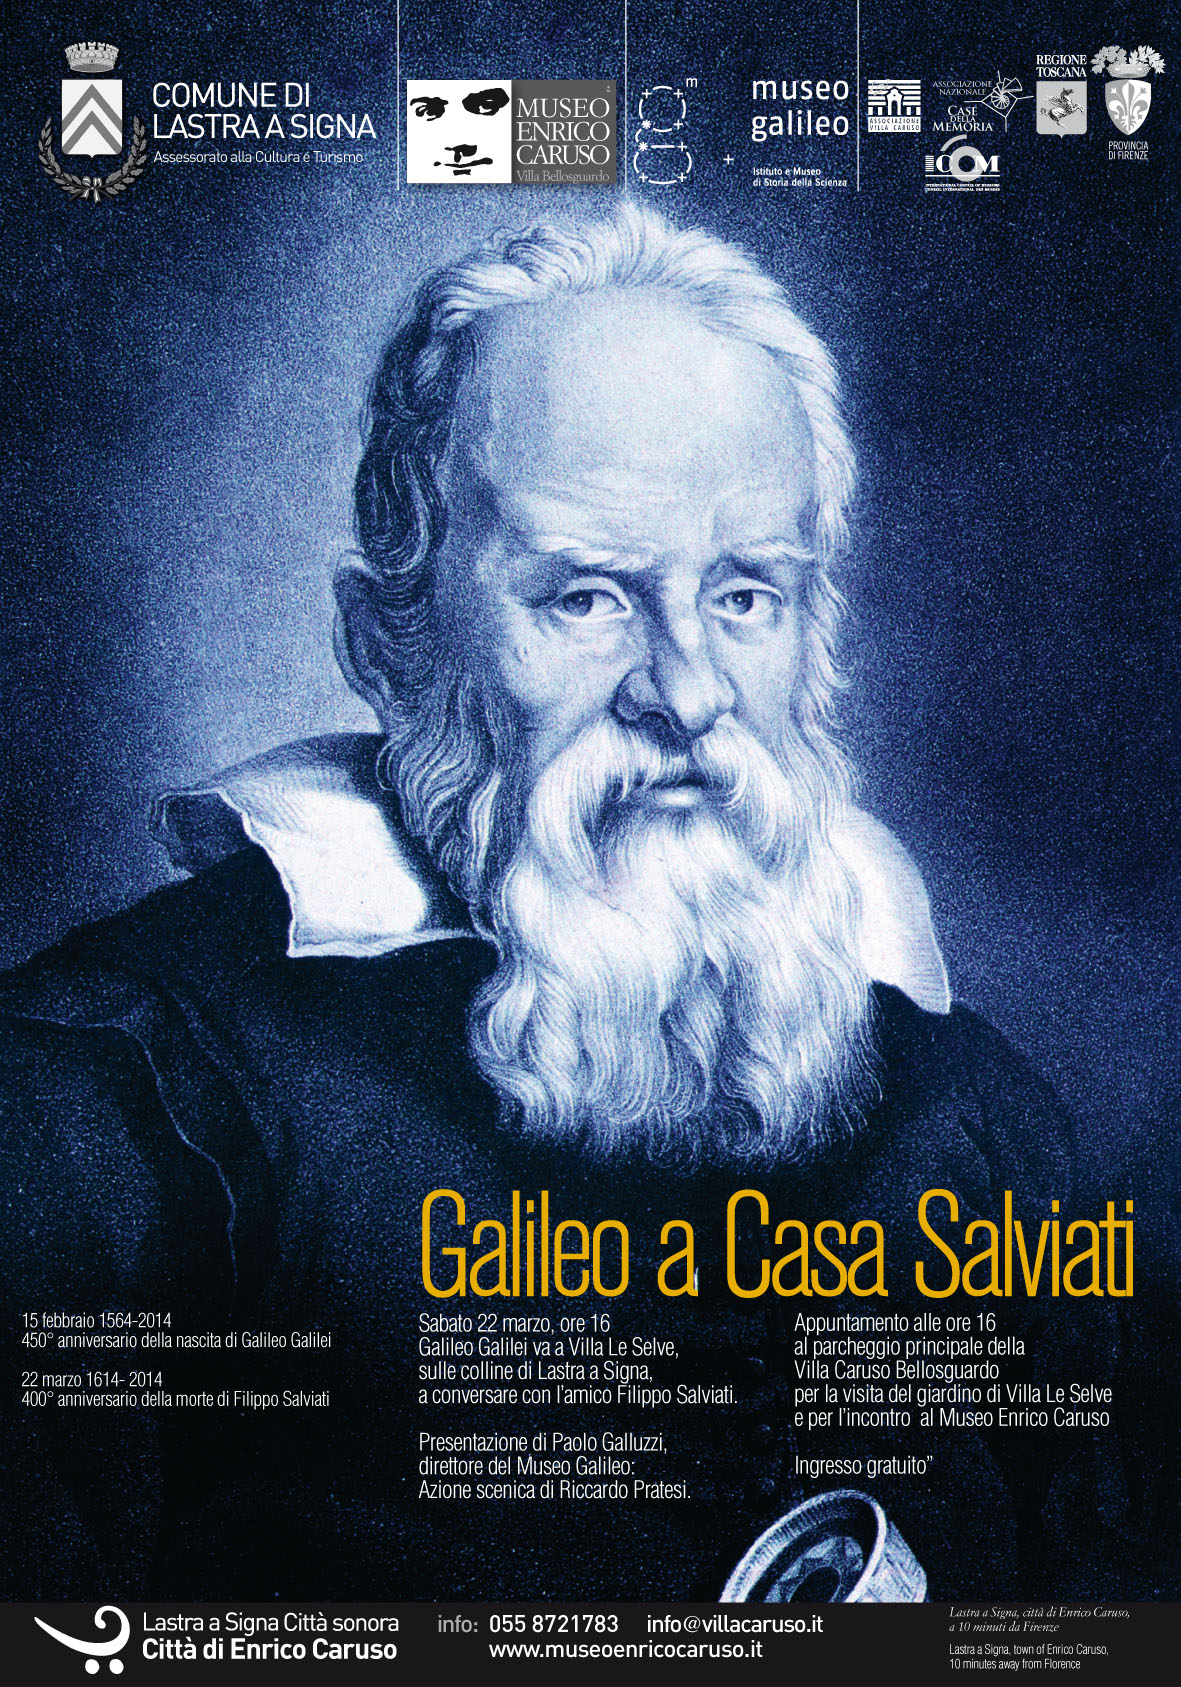 Galileo at Casa Salviati